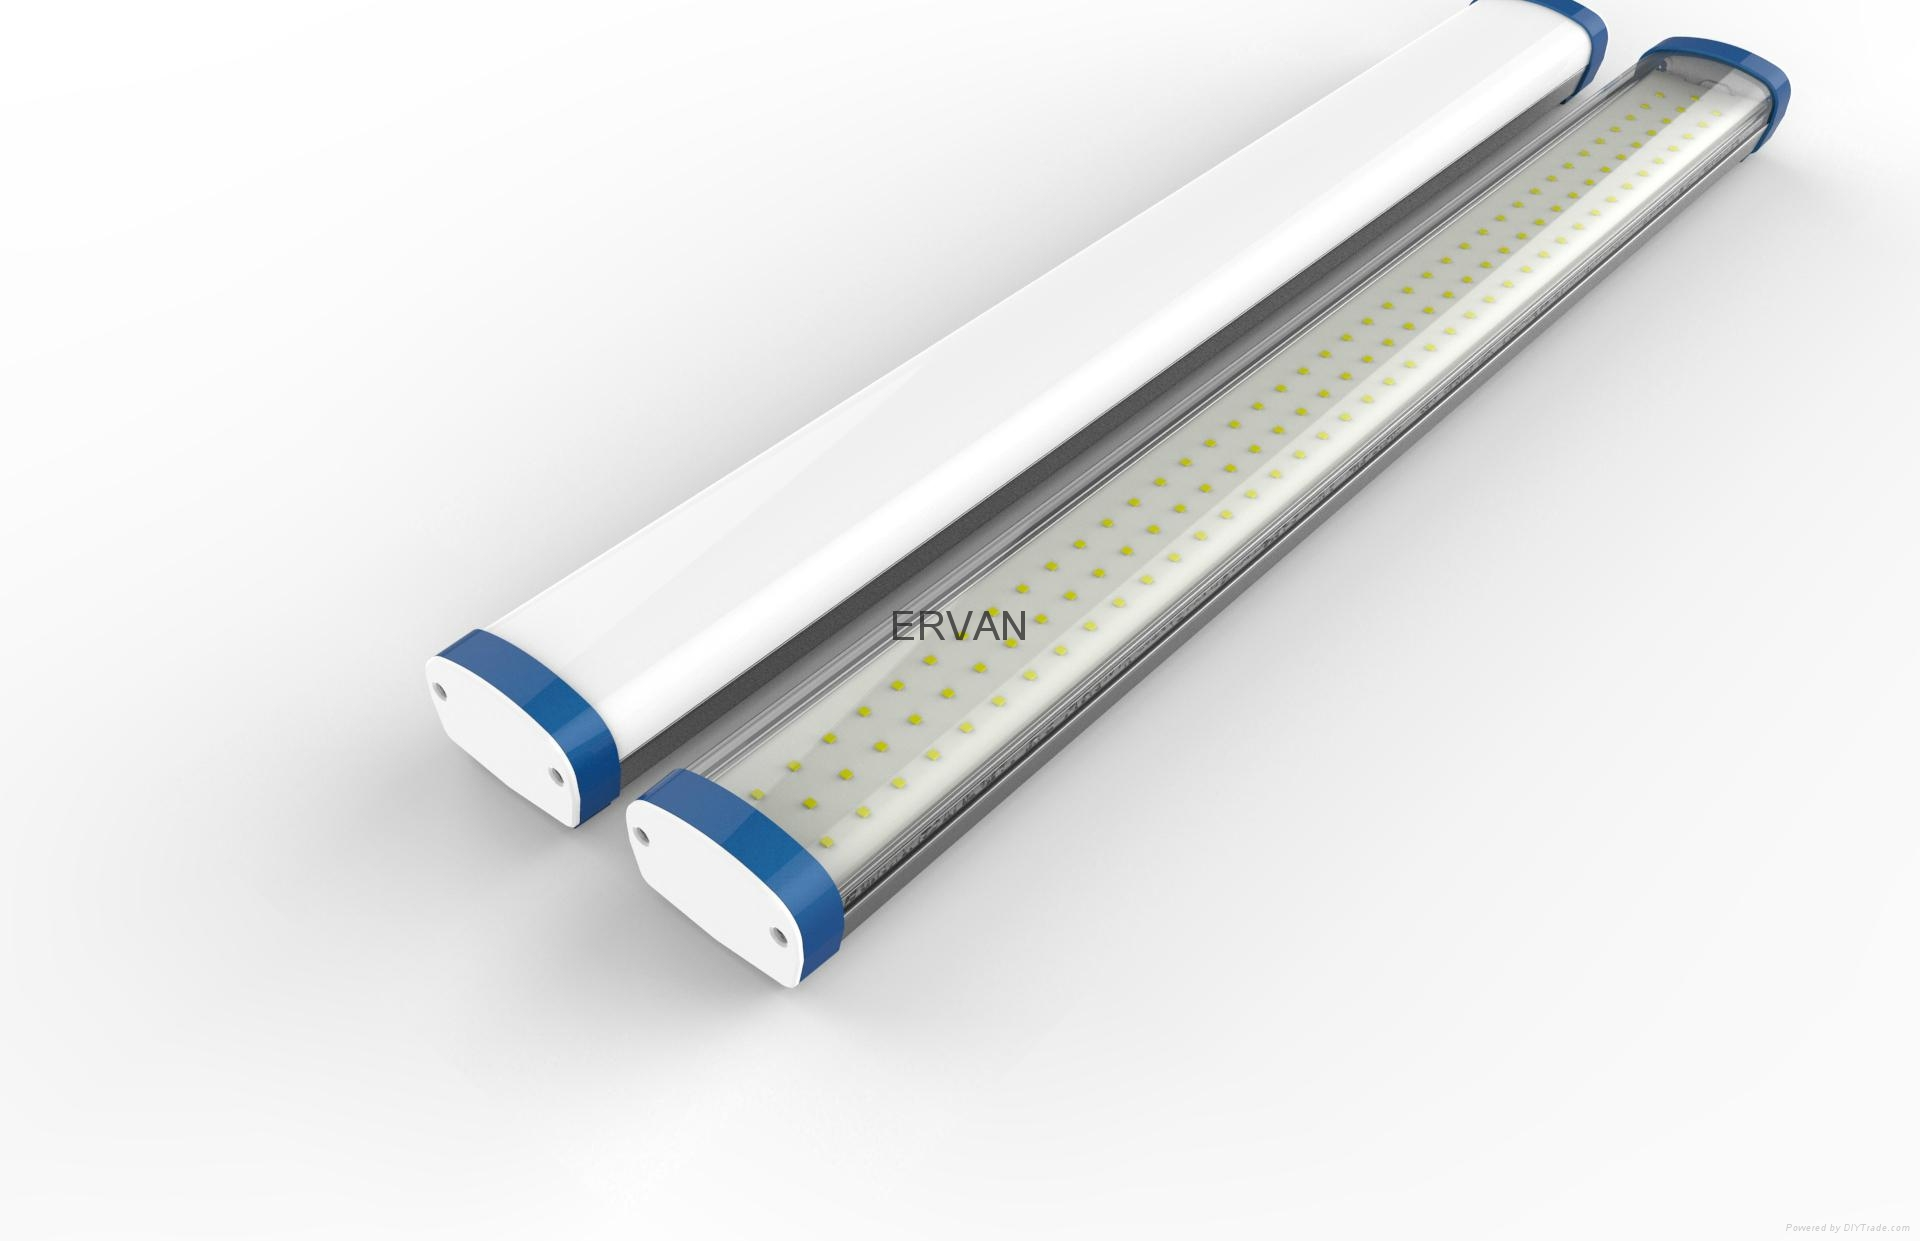 TUV approved ERVAN T07 retrofit LED batten fitting 18